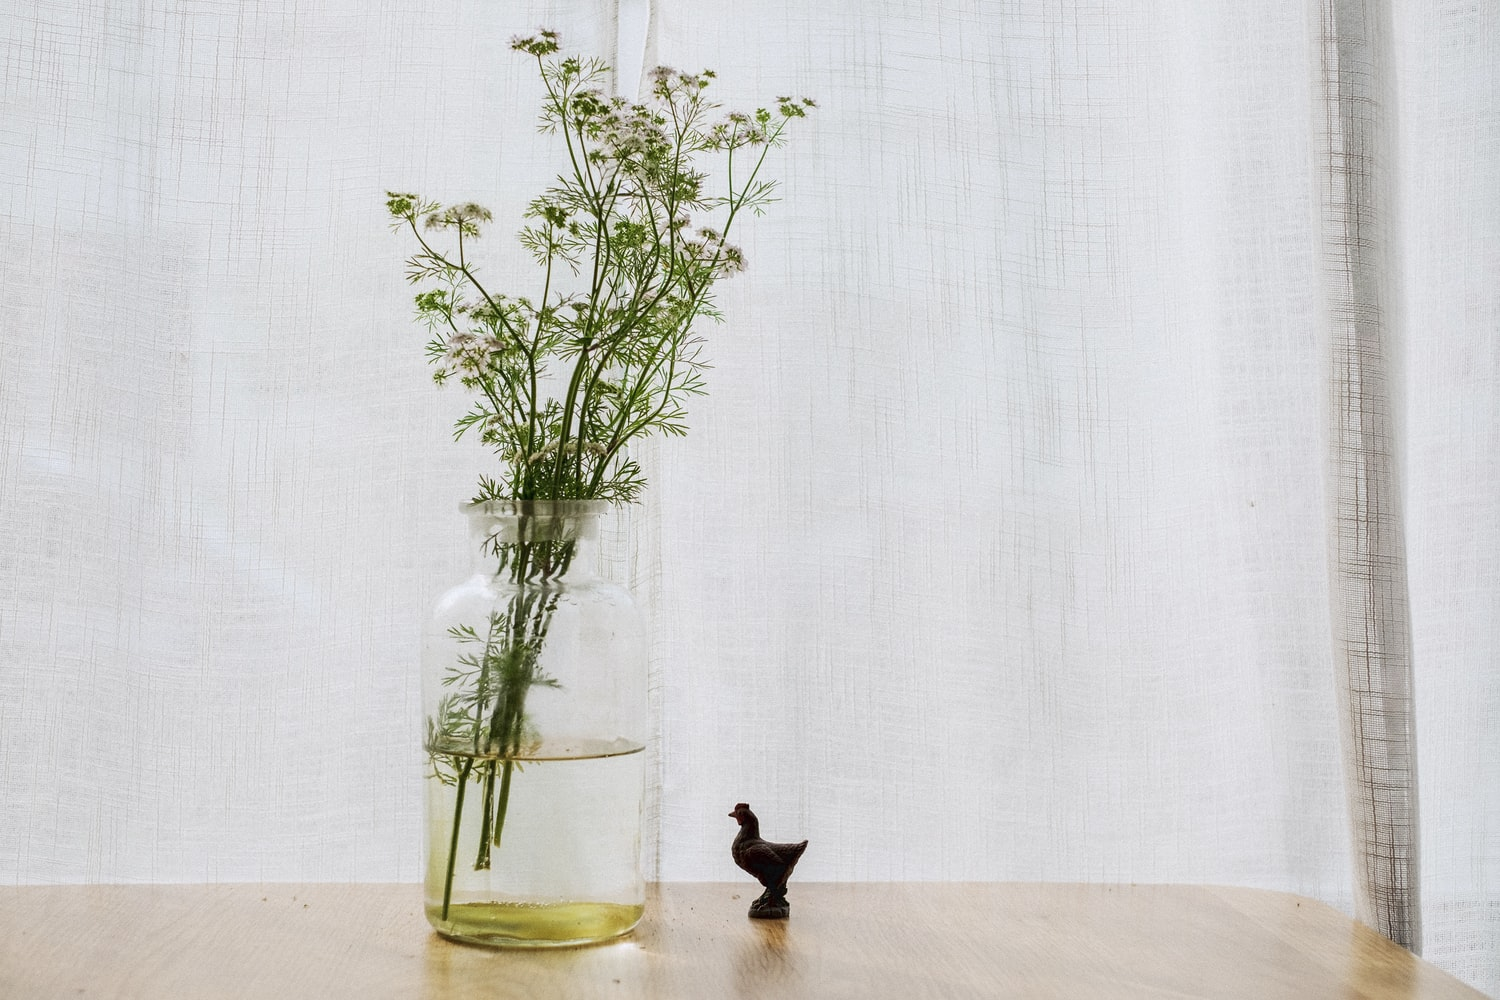 vase with flower  in a wooden table